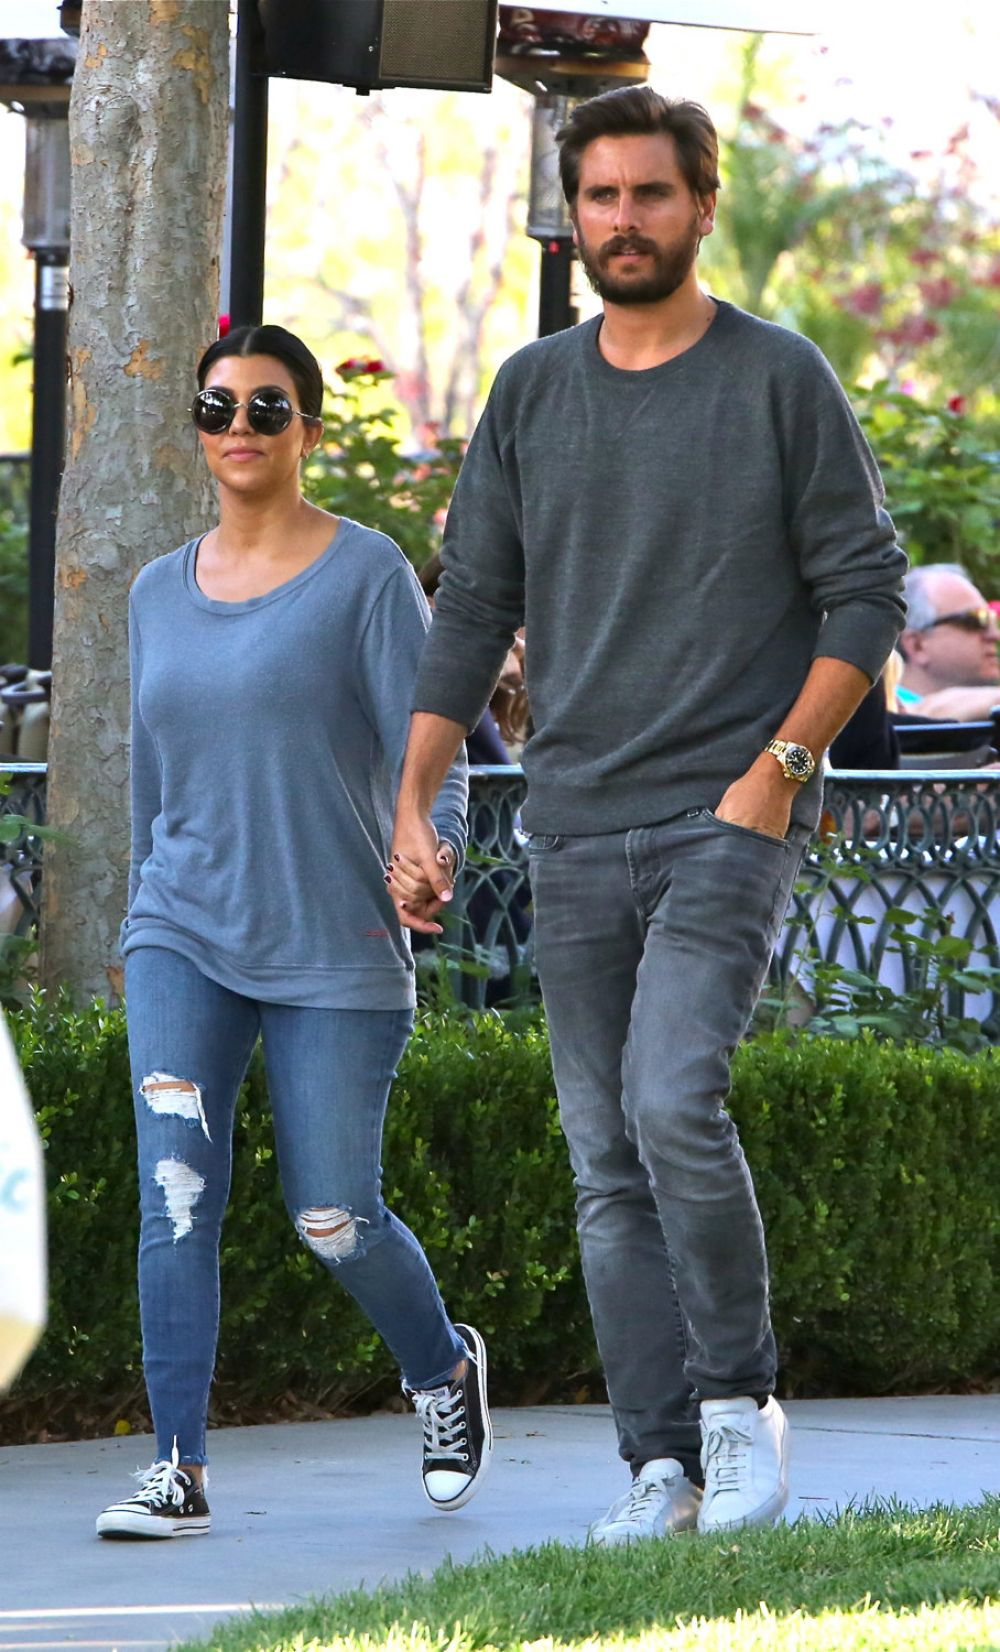 590814a8ad1d KOURTNEY KARDASHIAN and Scott Disick Out for Dinner in Calabasas ...